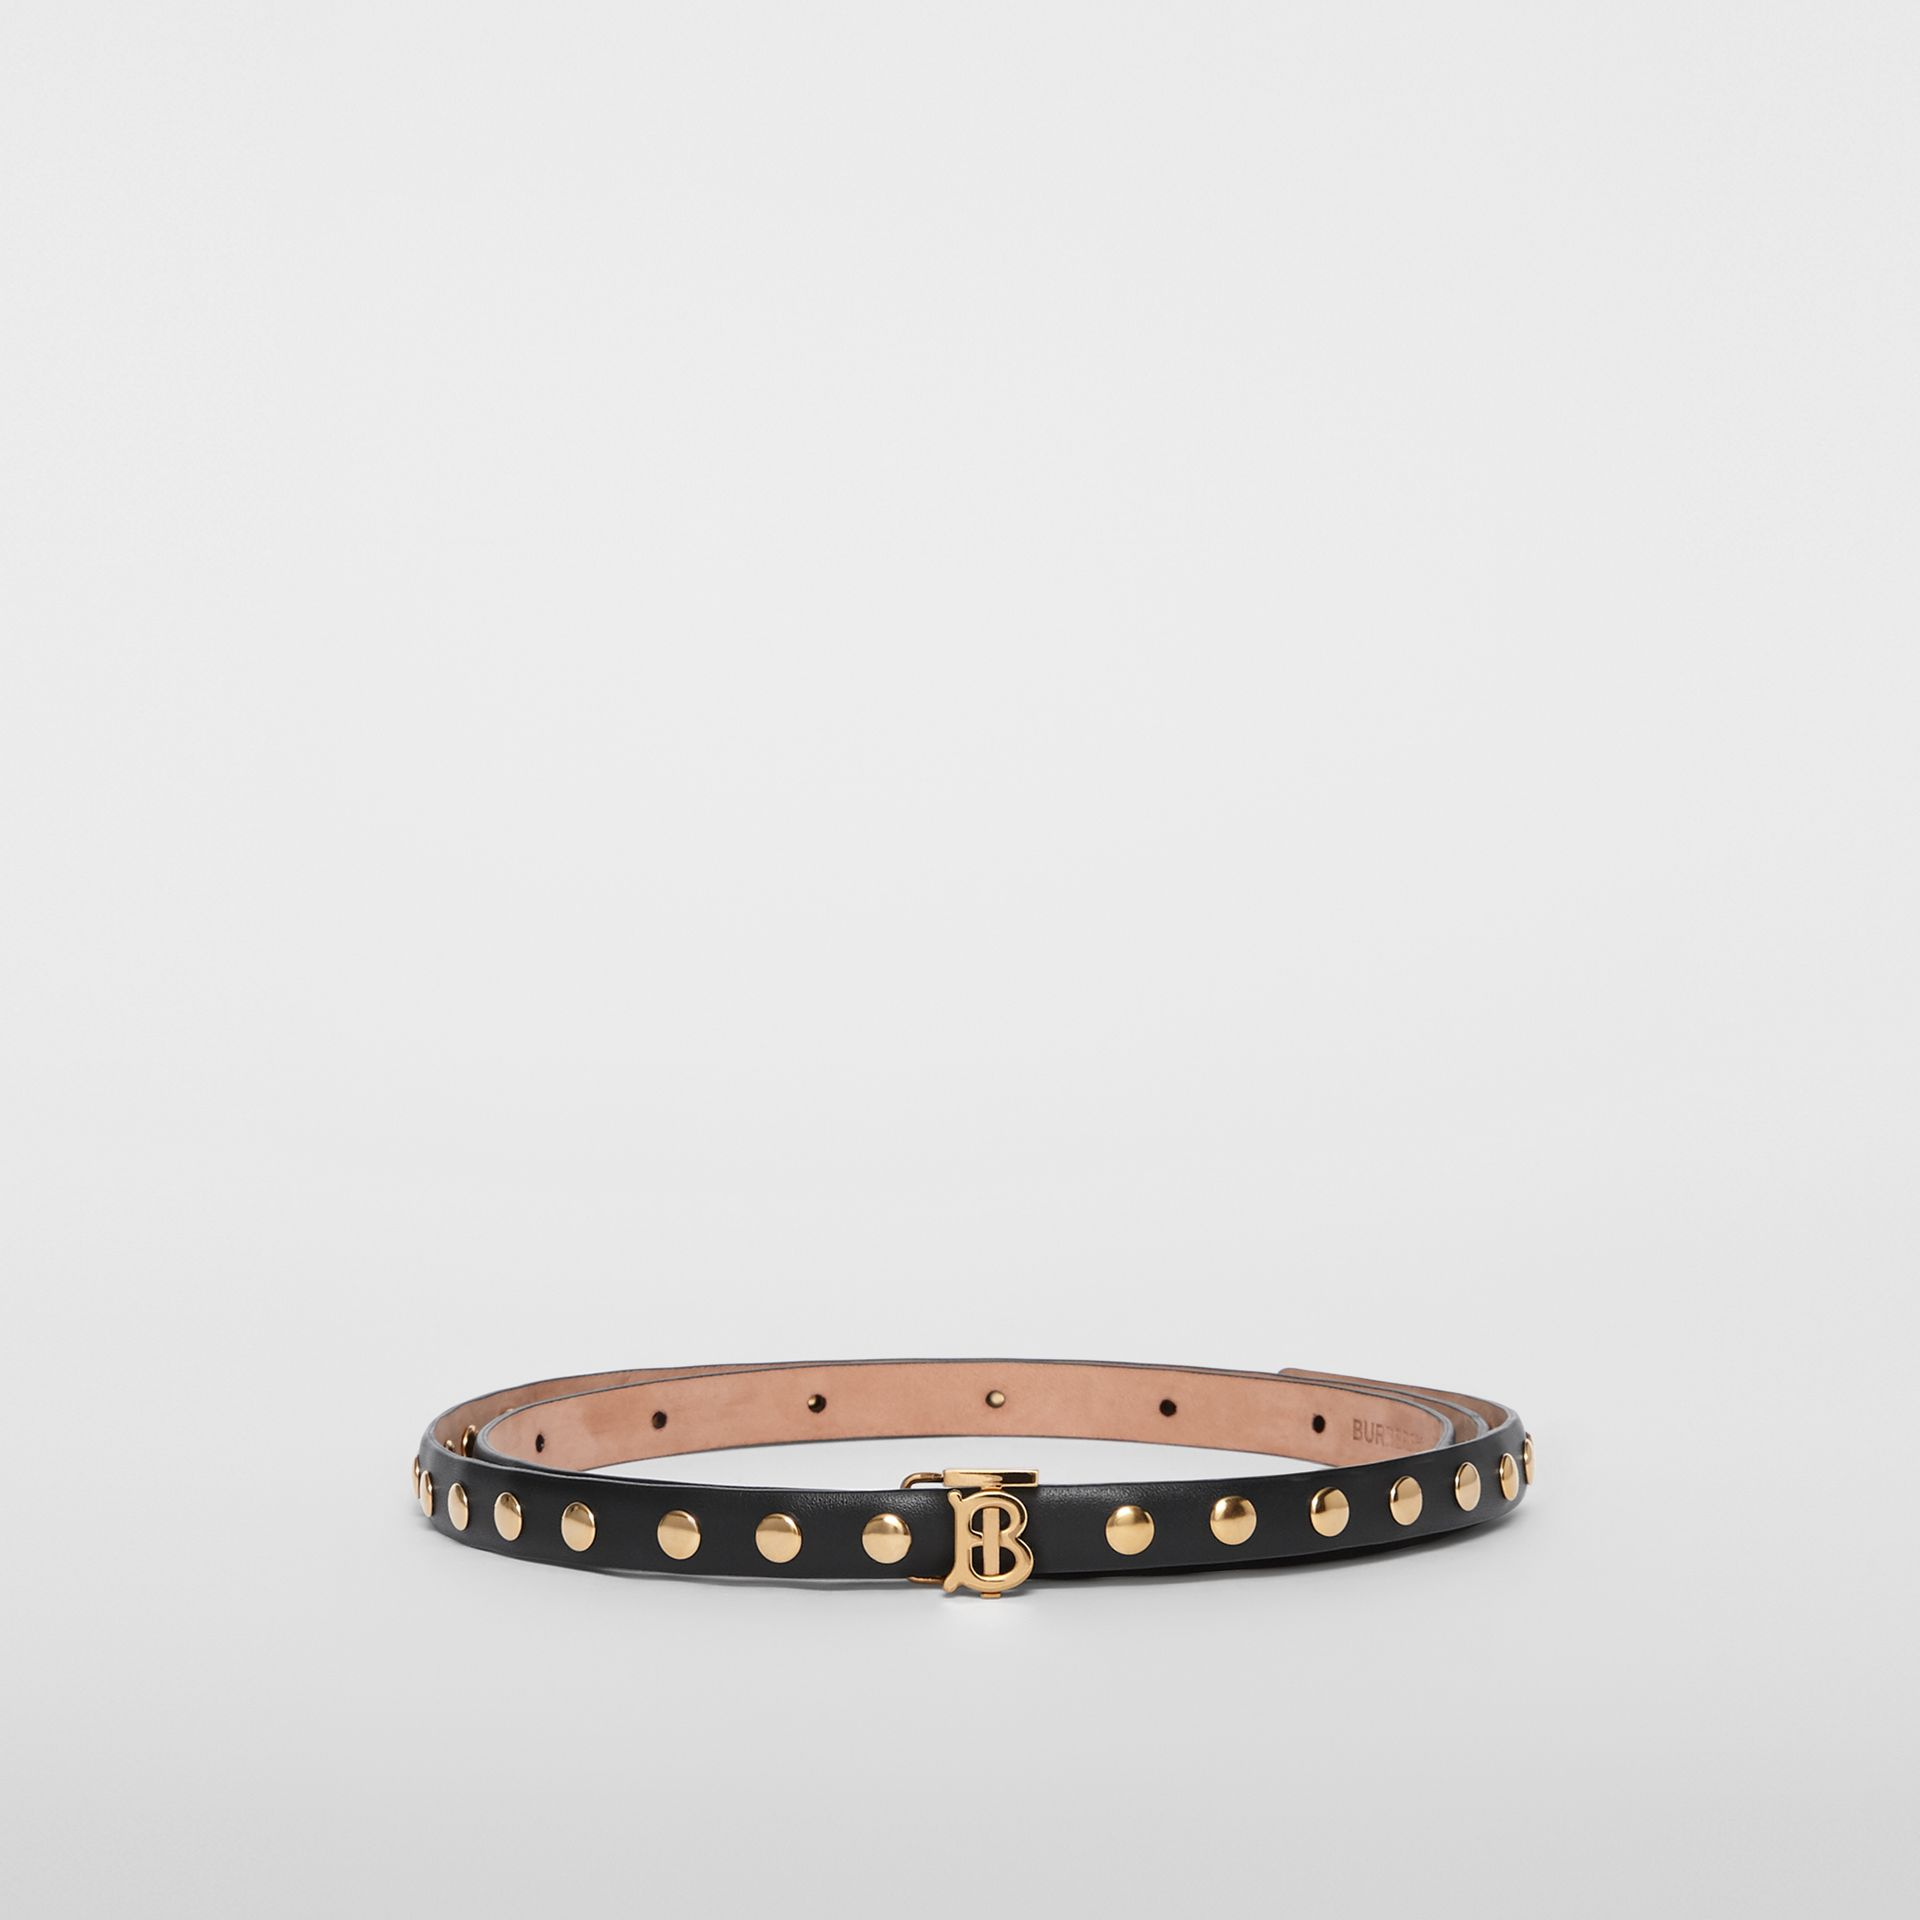 Monogram Motif Studded Leather Belt in Black/light Gold - Women | Burberry Australia - gallery image 3